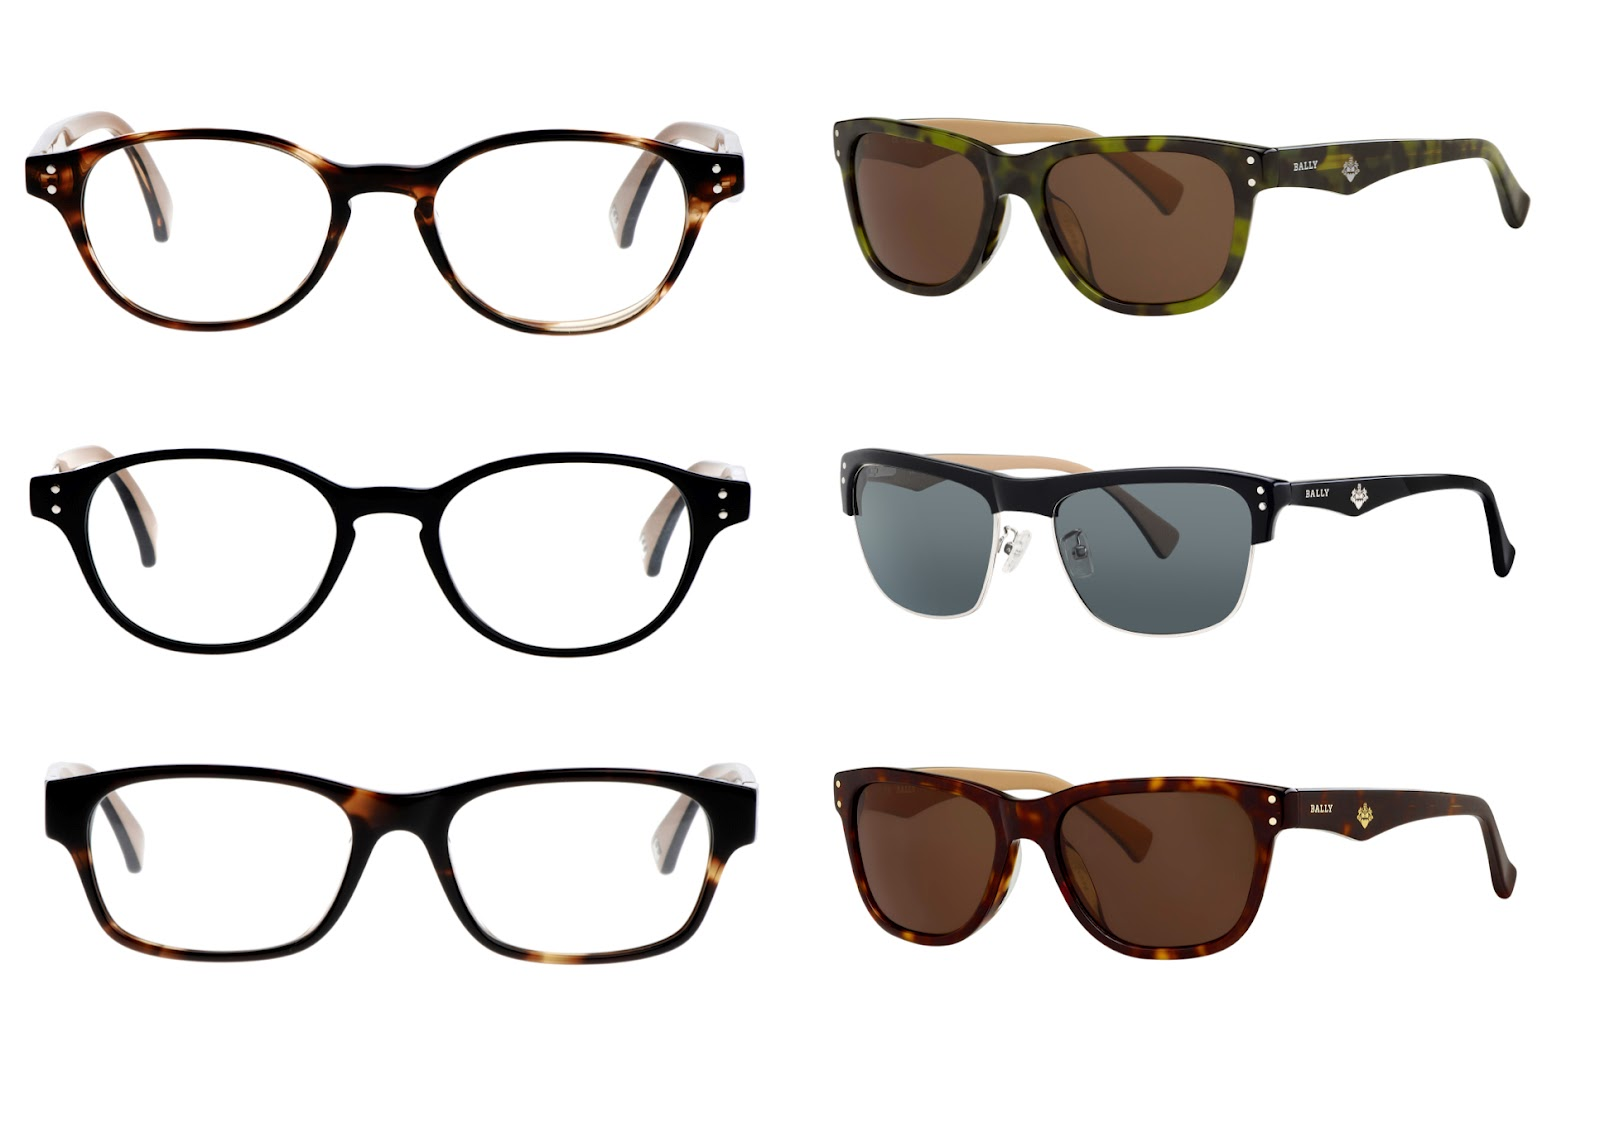 BALLY LAUNCHES EYEWEAR COLLECTION